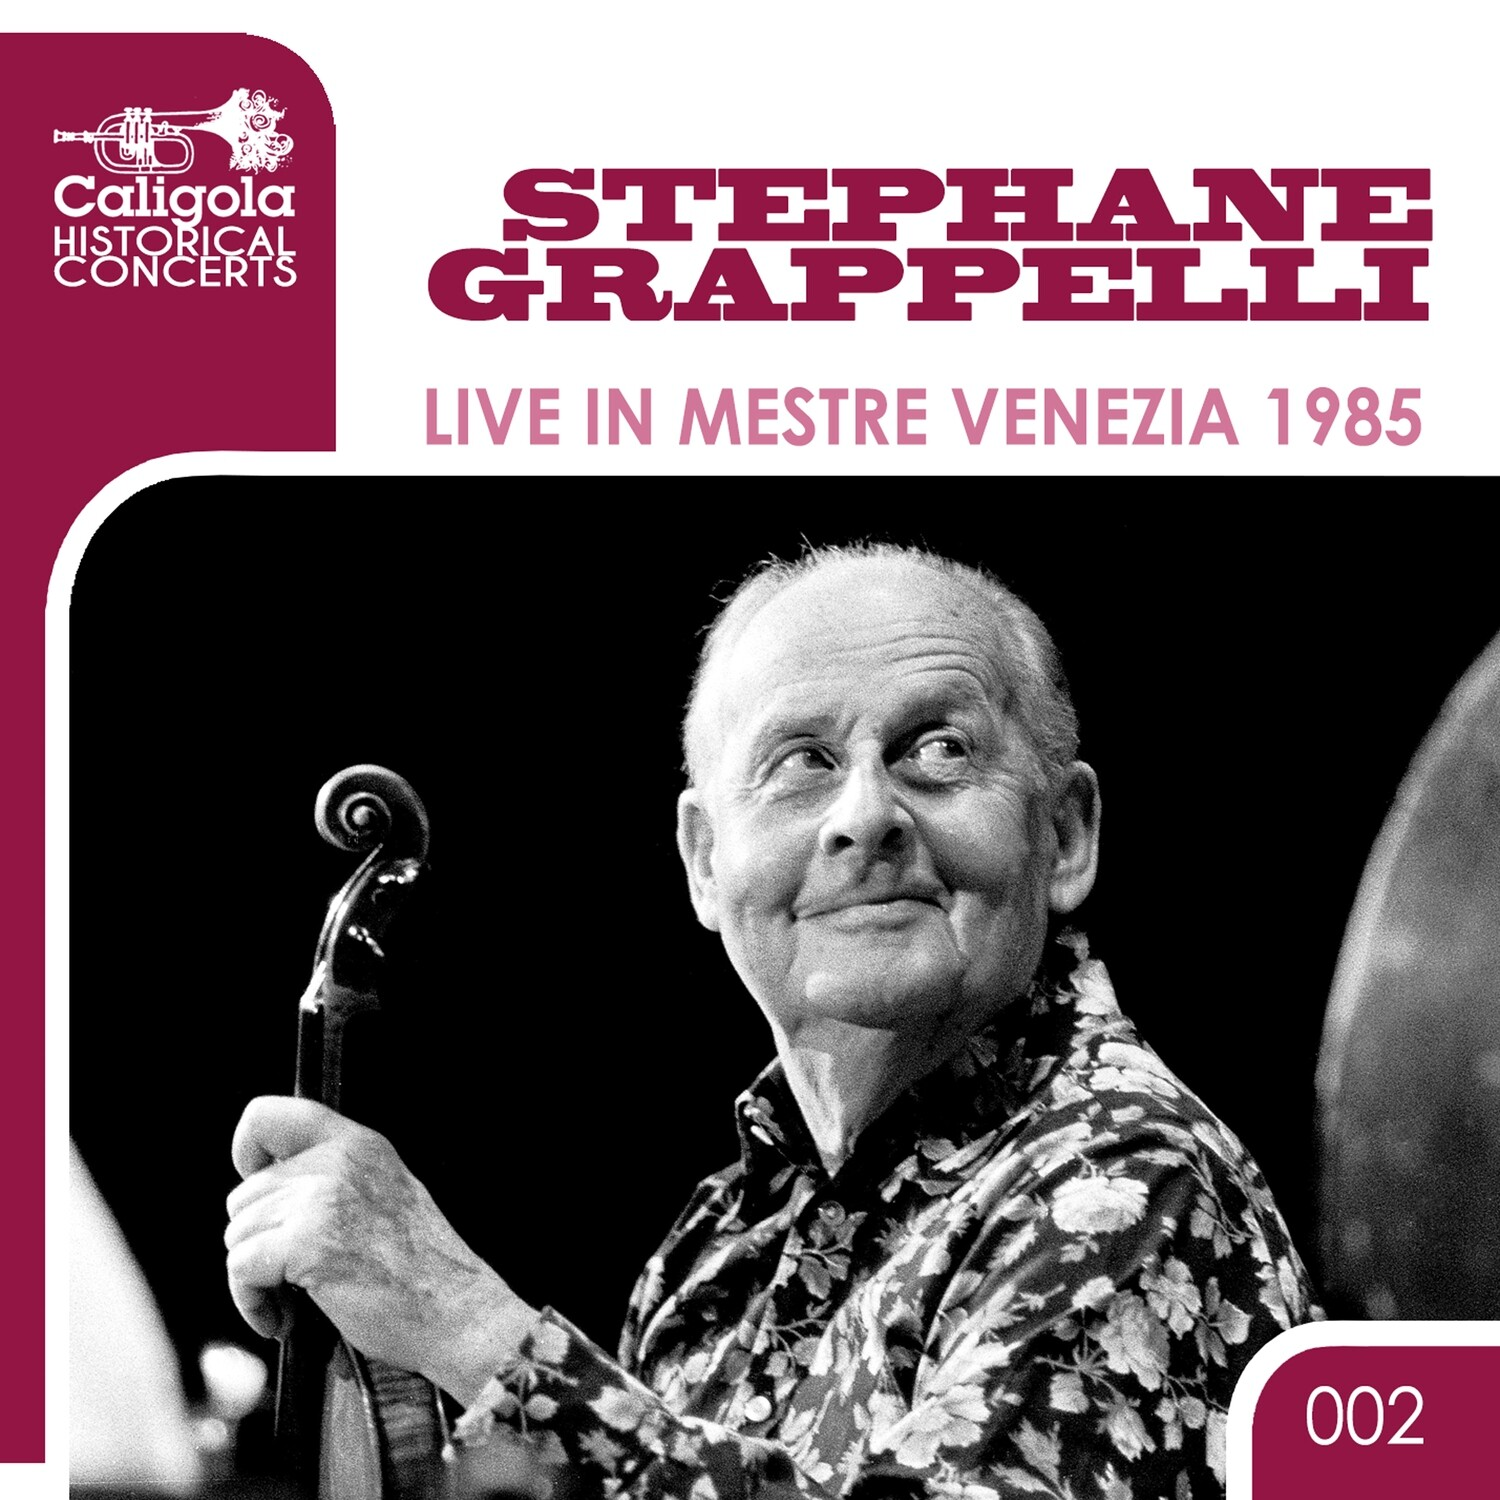 STEPHANE GRAPPELLI  «Live in Mestre Venezia 1985»  (files .wav + covers .jpeg + booklet .pdf)